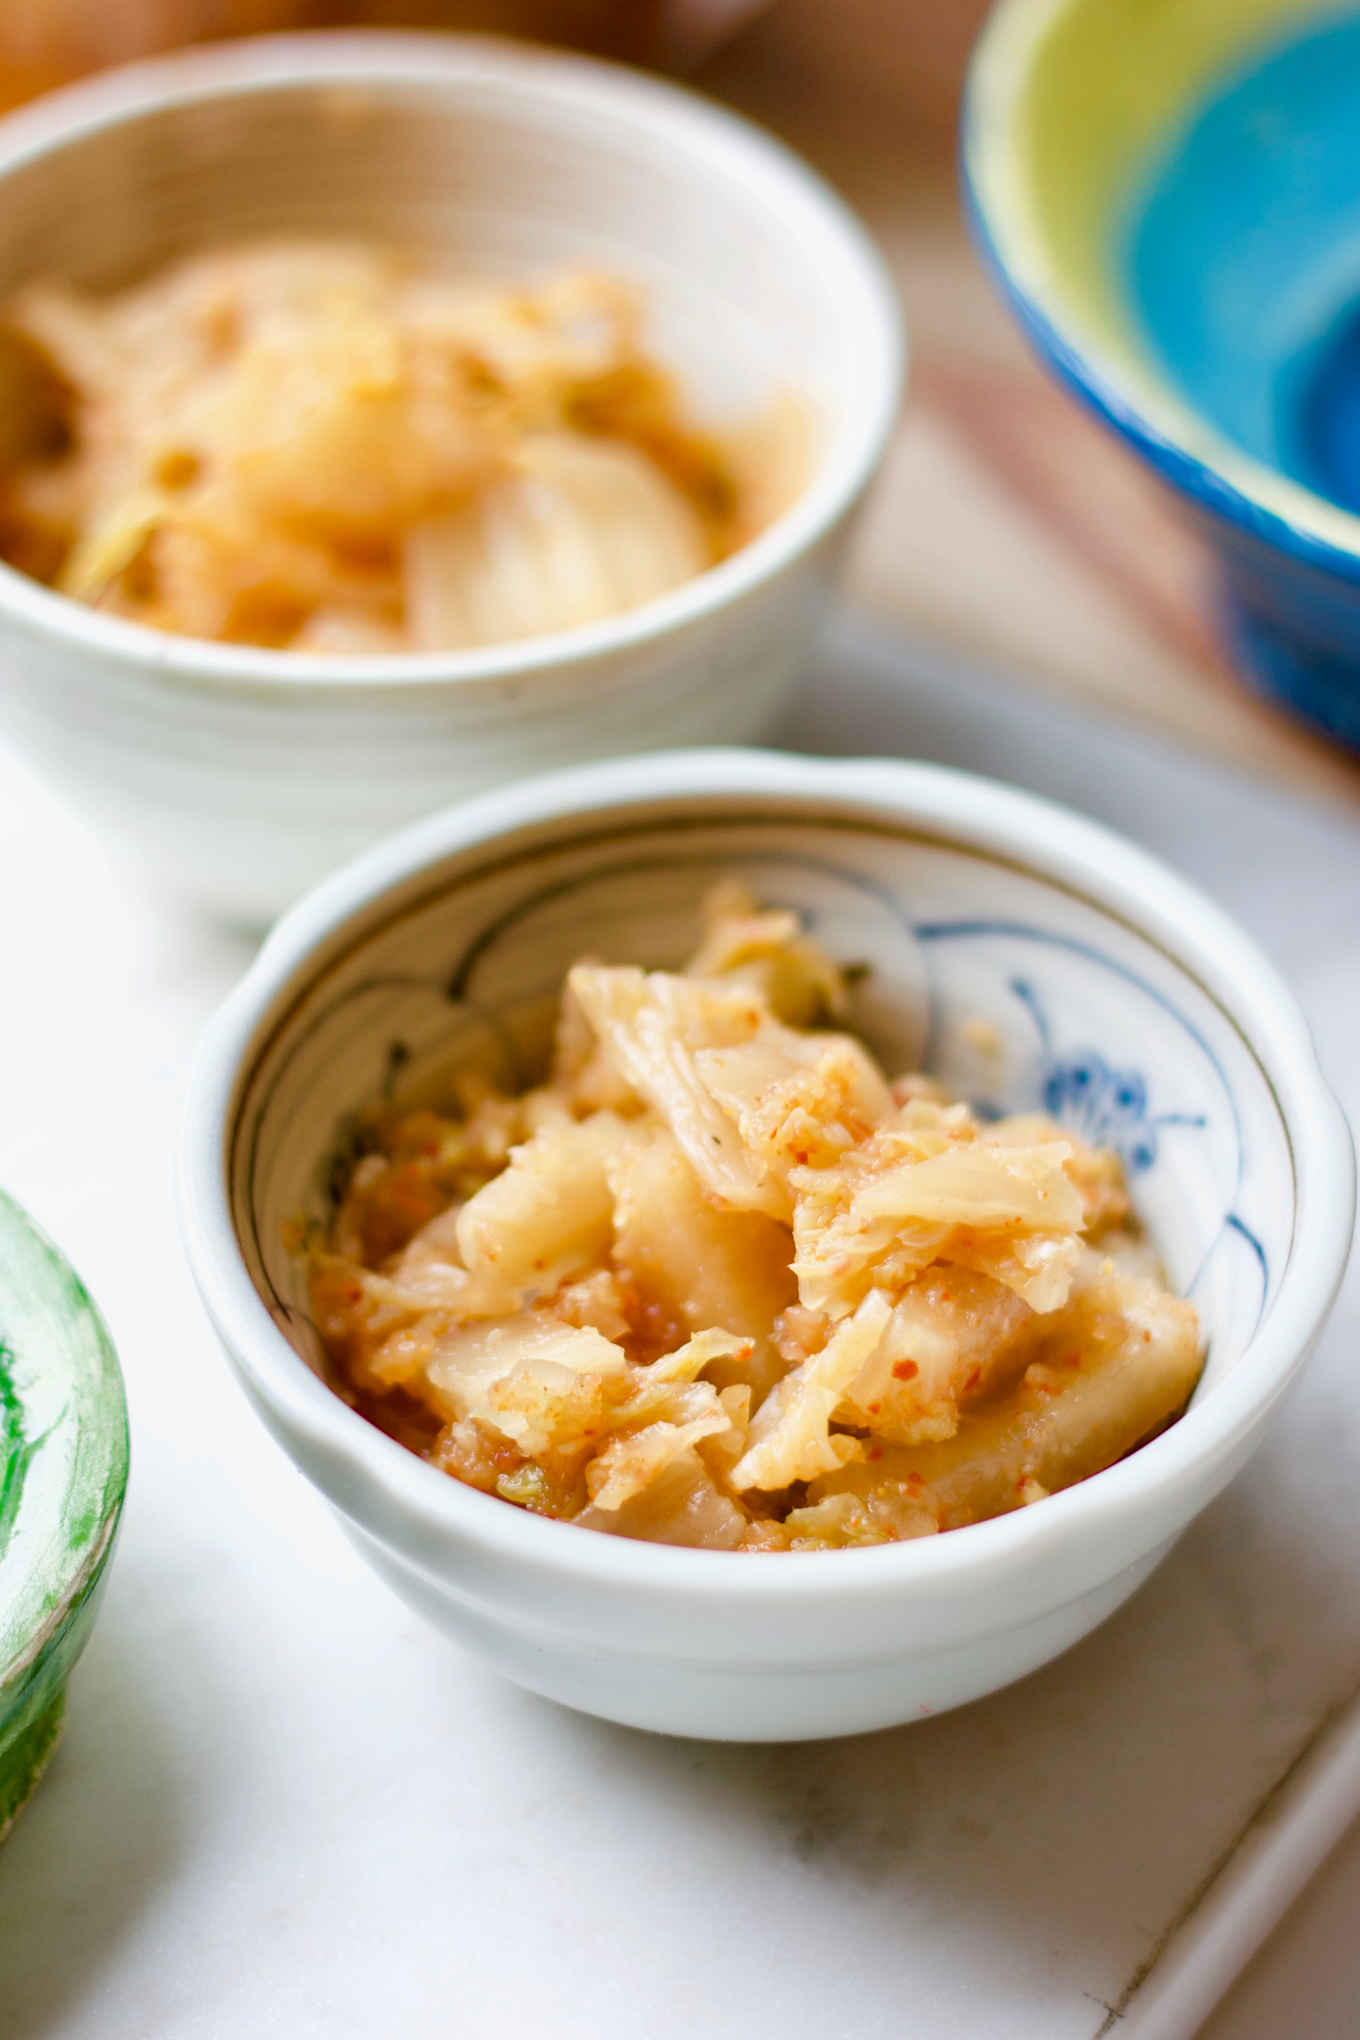 apple fermented kimchi in a small serving bowl